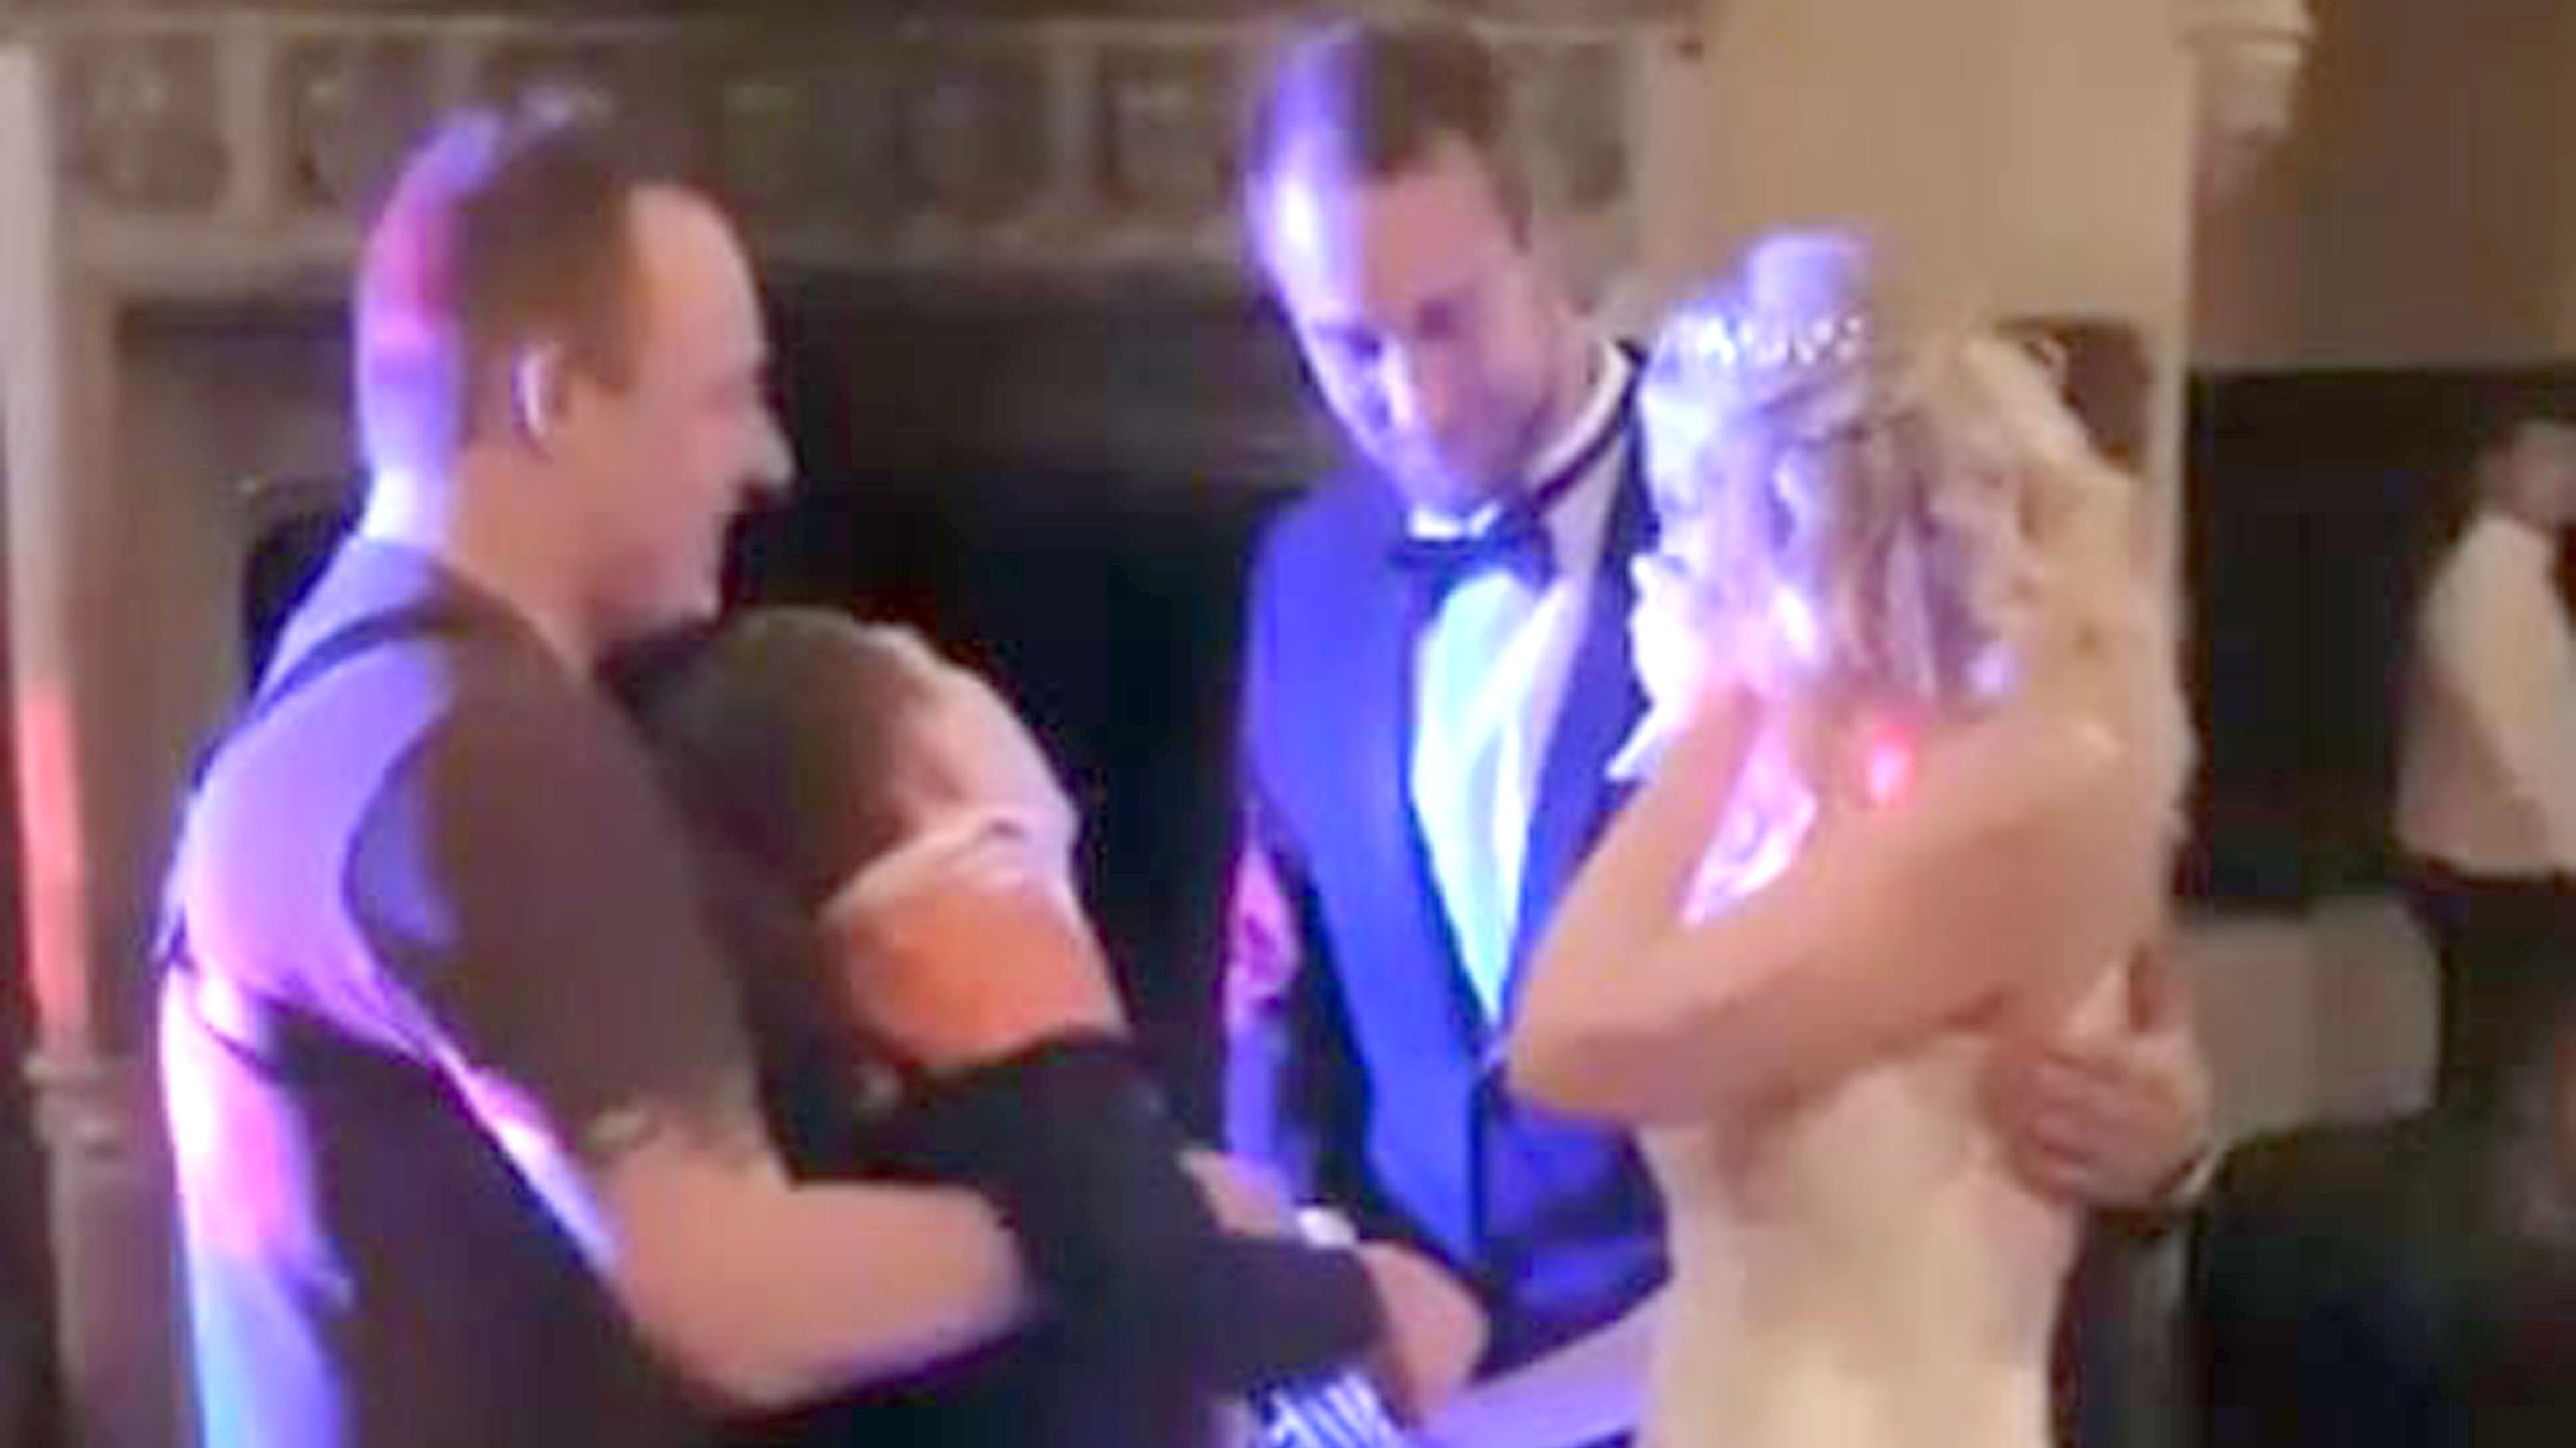 The video of Alex Dieterle dancing with his mother Jo has been viewed more than 800,000 times online